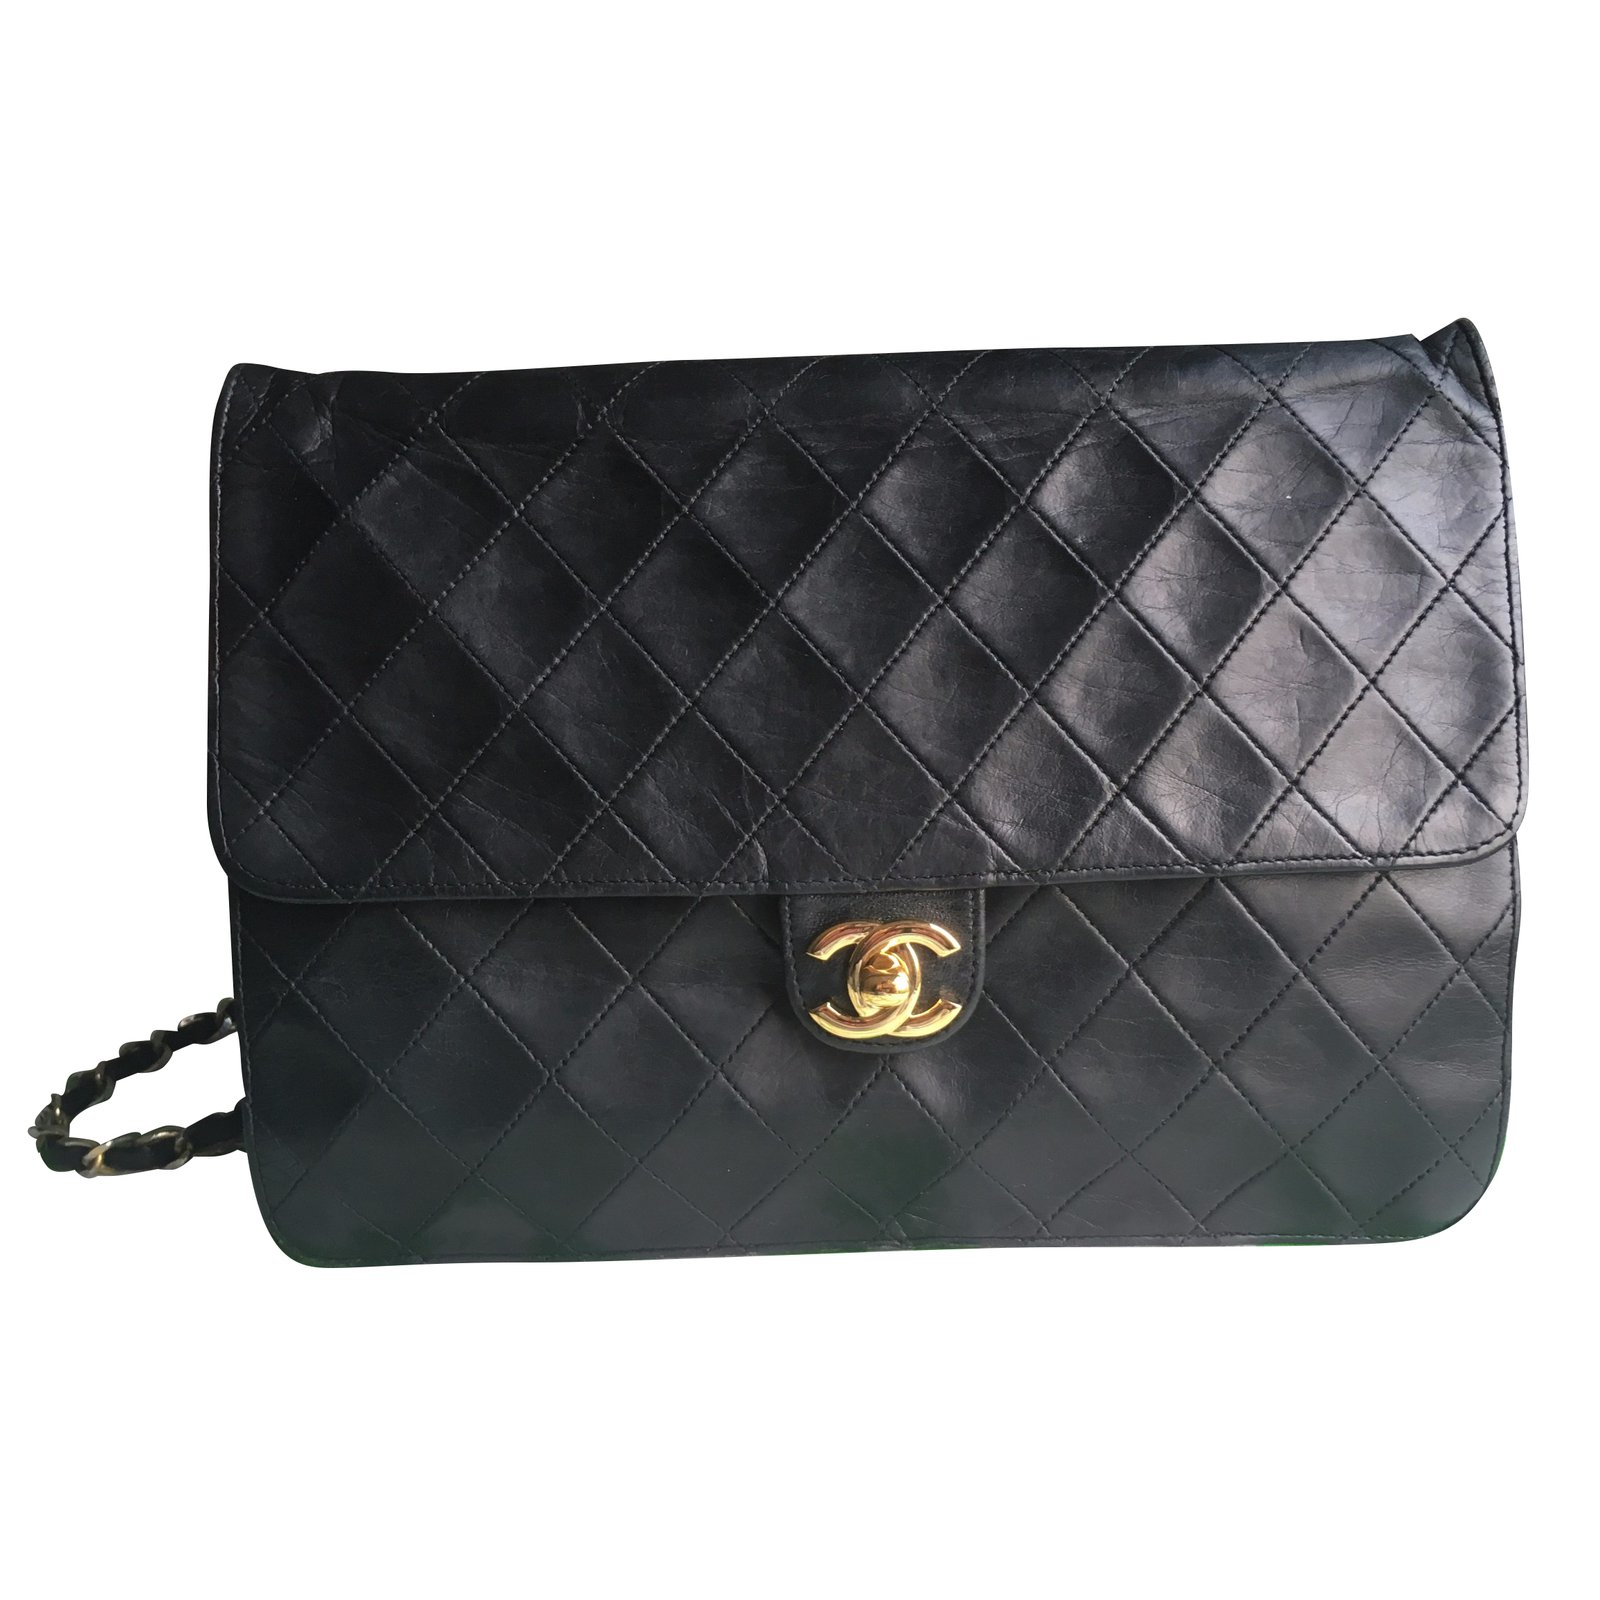 8dc39c58a00 Chanel Vintage Timeless Handbags Leather Black ref.48788 - Joli Closet